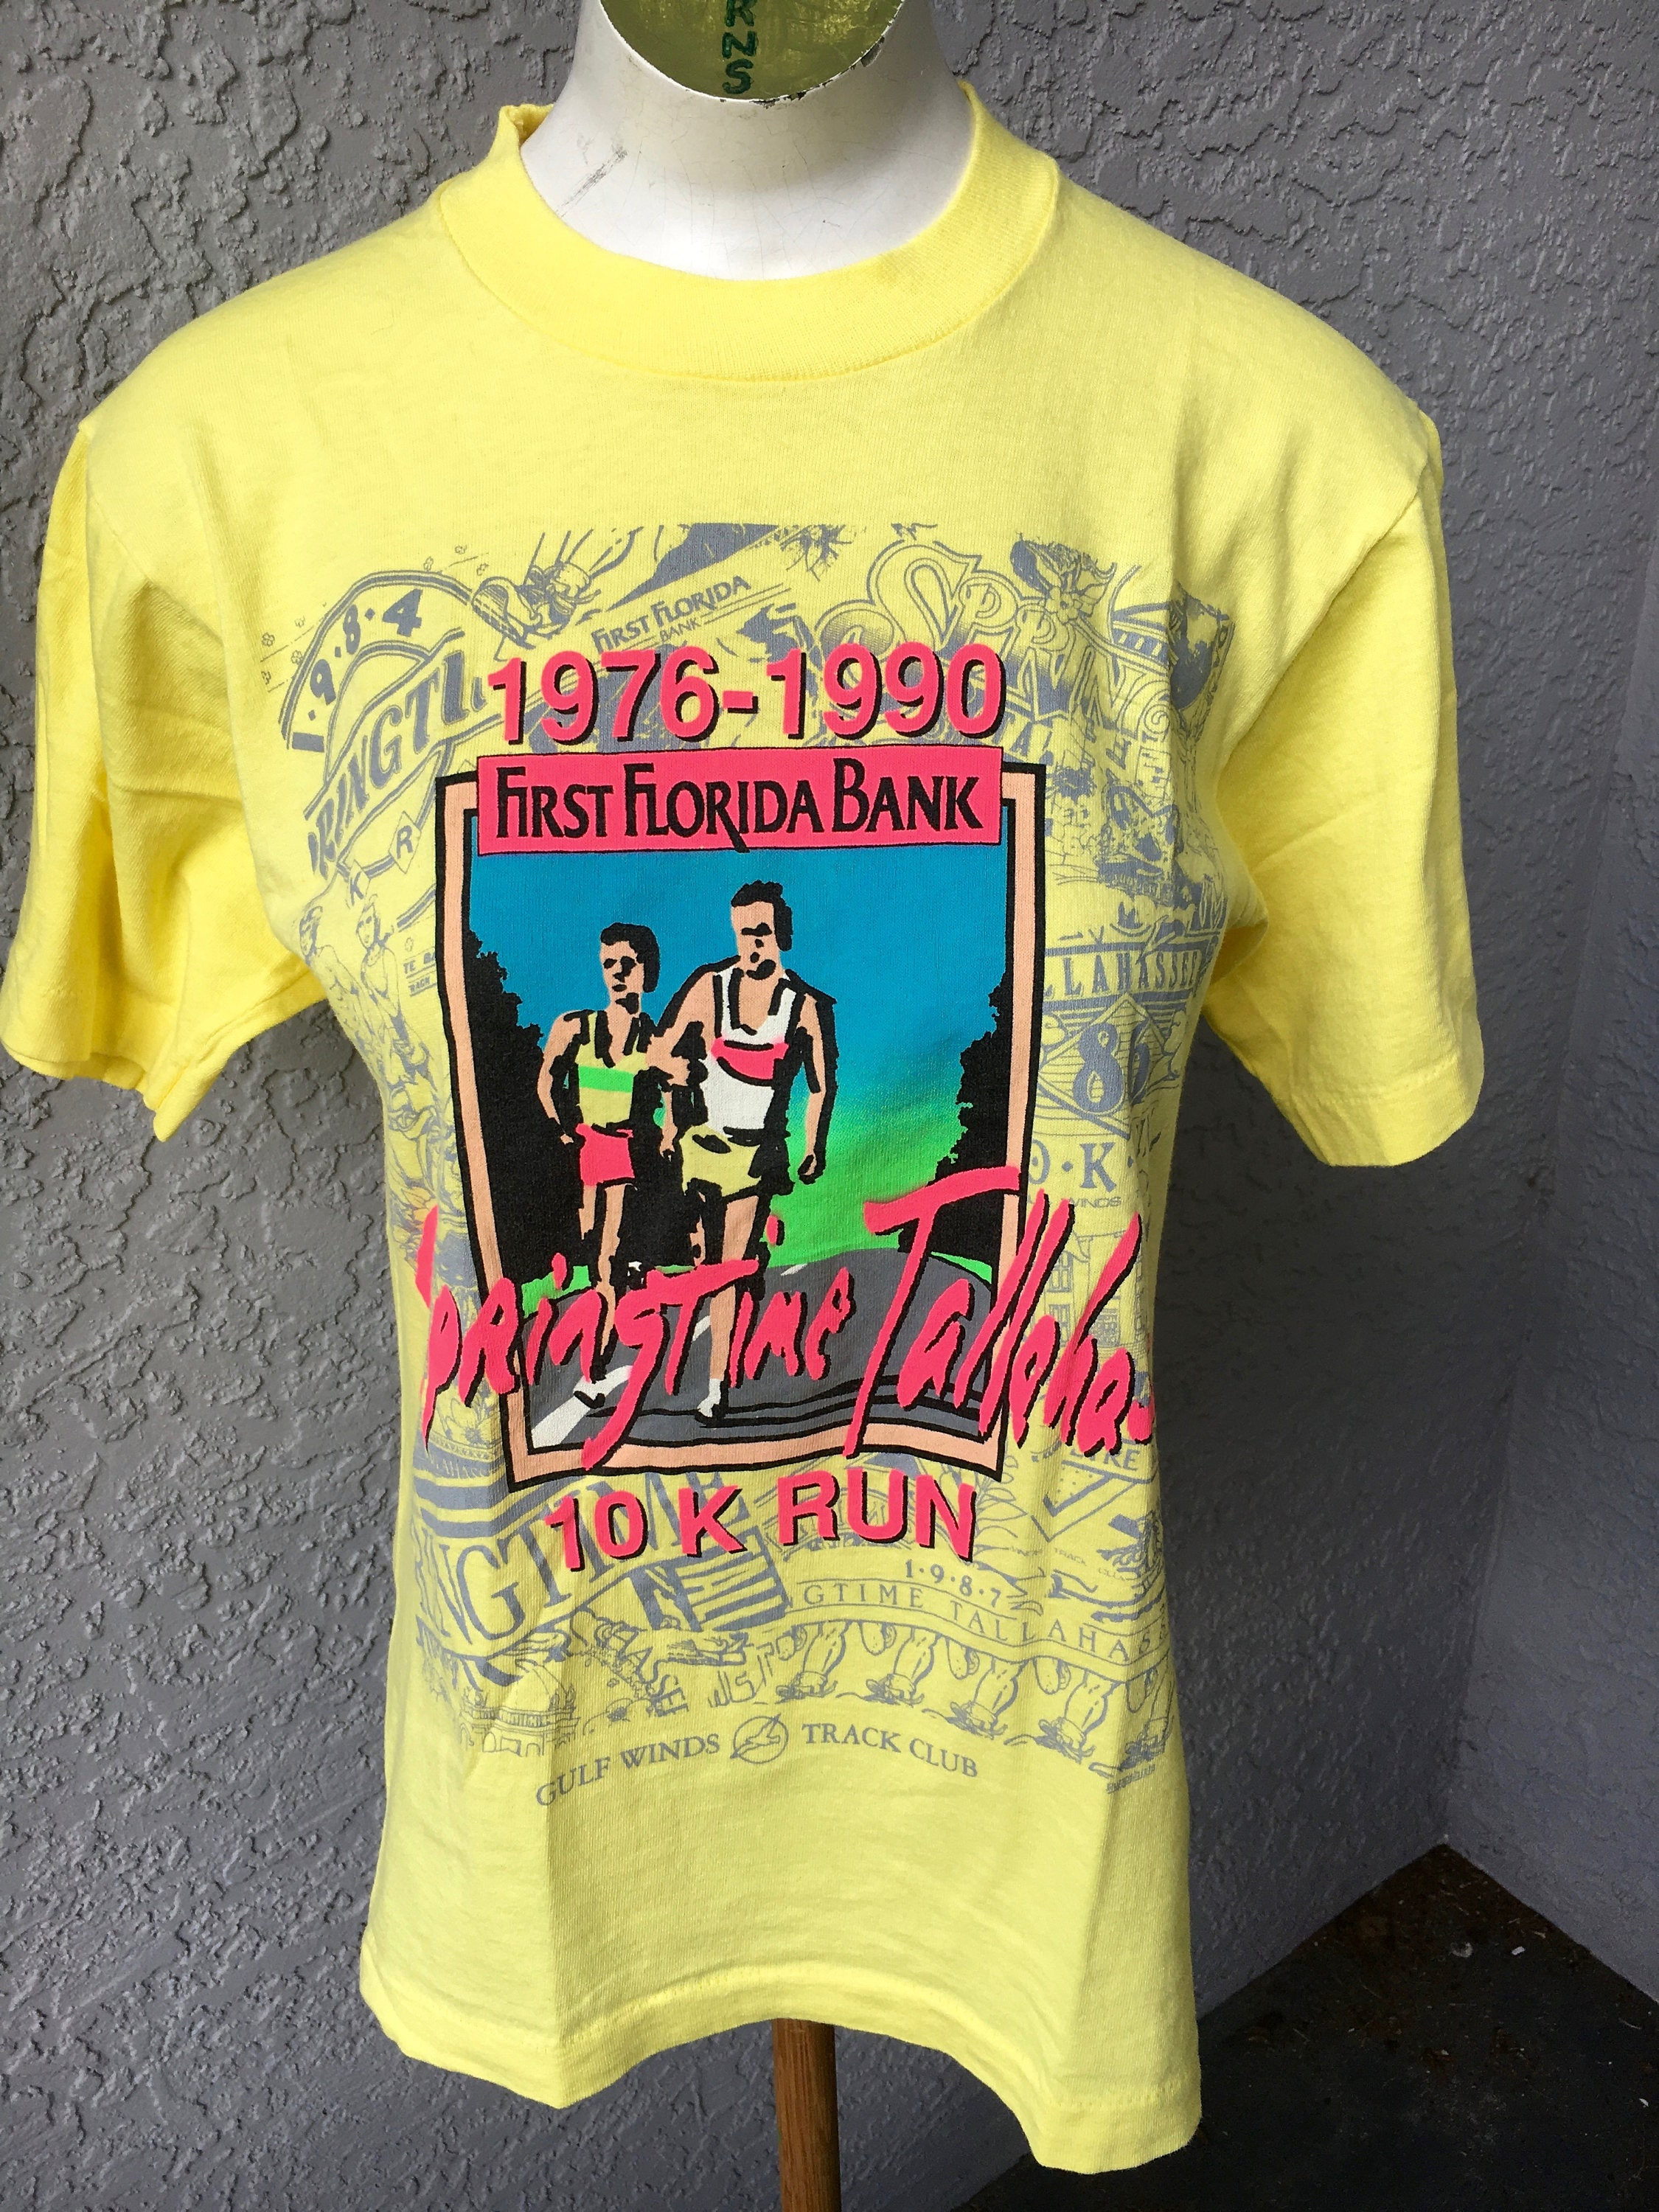 696d4c11511c14 ... Springtime Tallahassee 1990 vintage 10k tee shirt - size small  exquisite style c93fd 6df10 ...